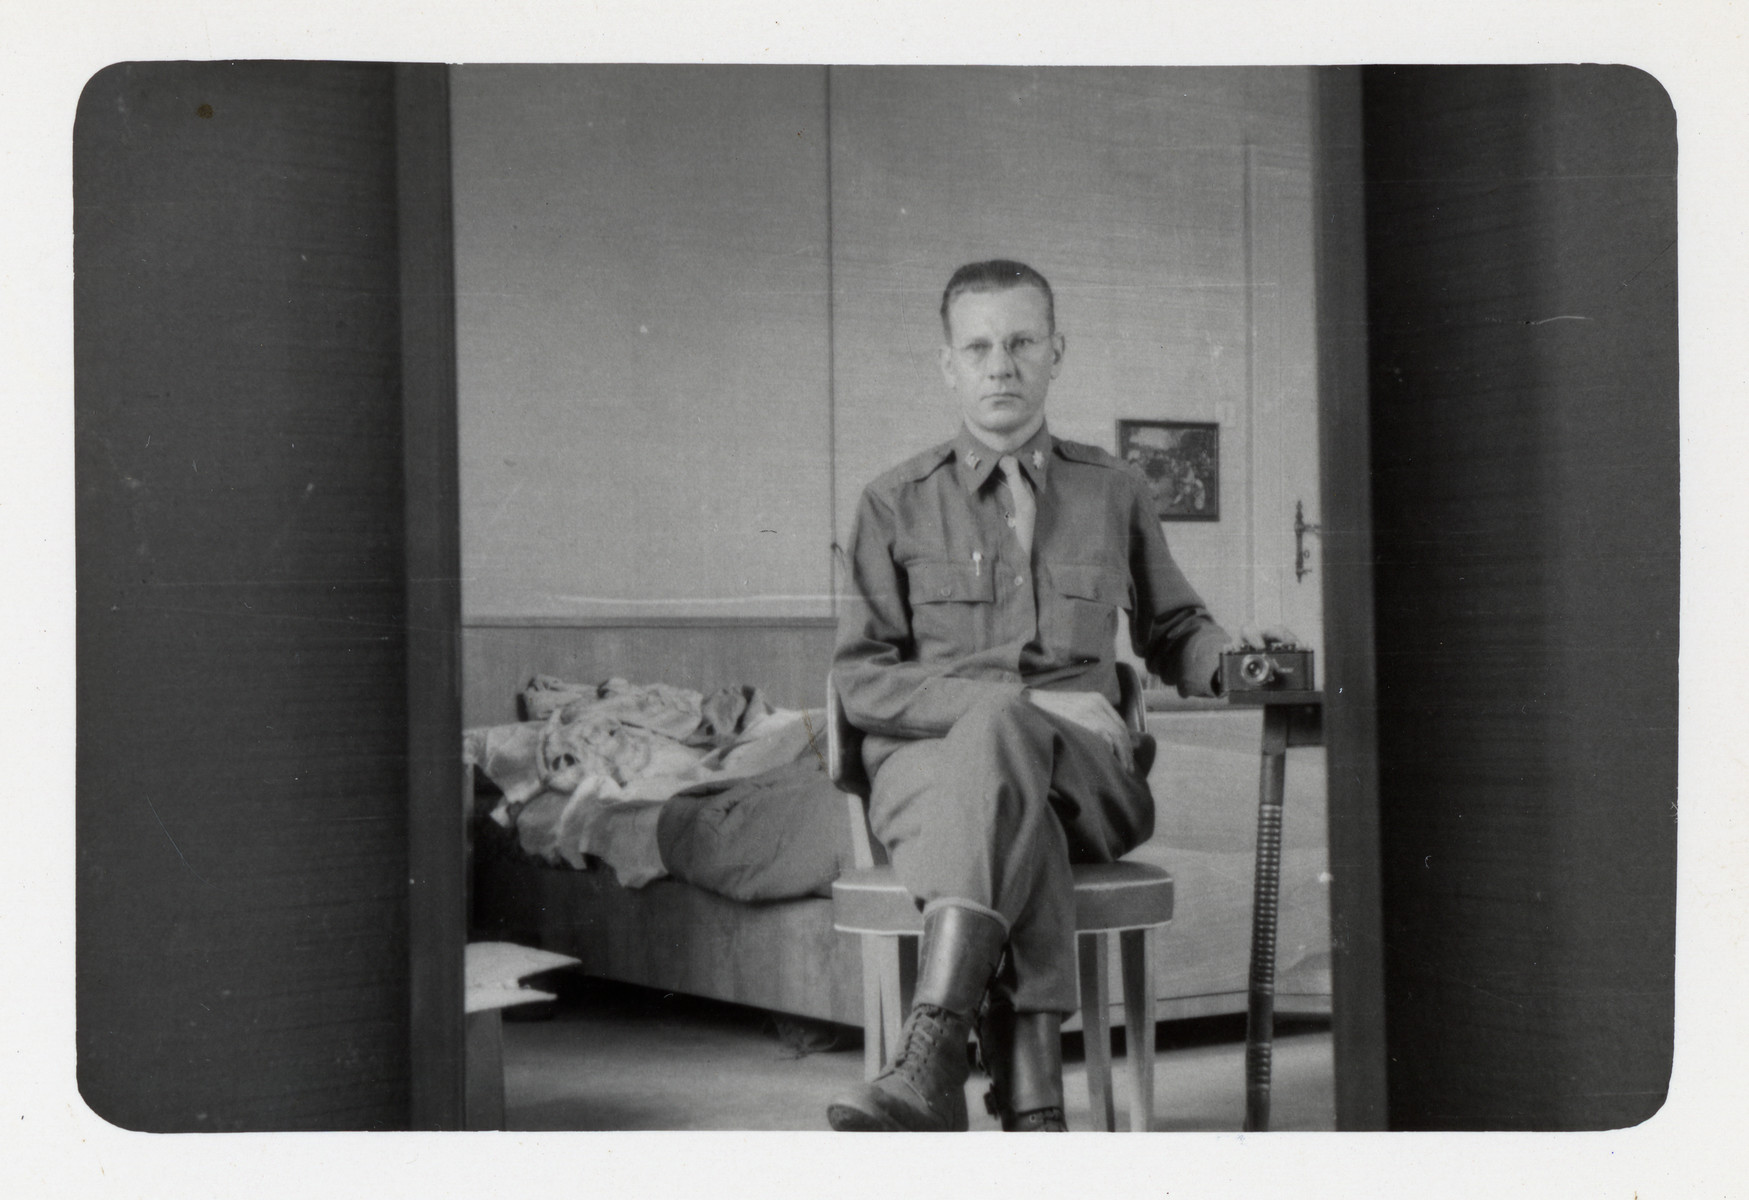 Lt. Colonel George Raymond Snyder poses in his quarters with his hand on a camera.